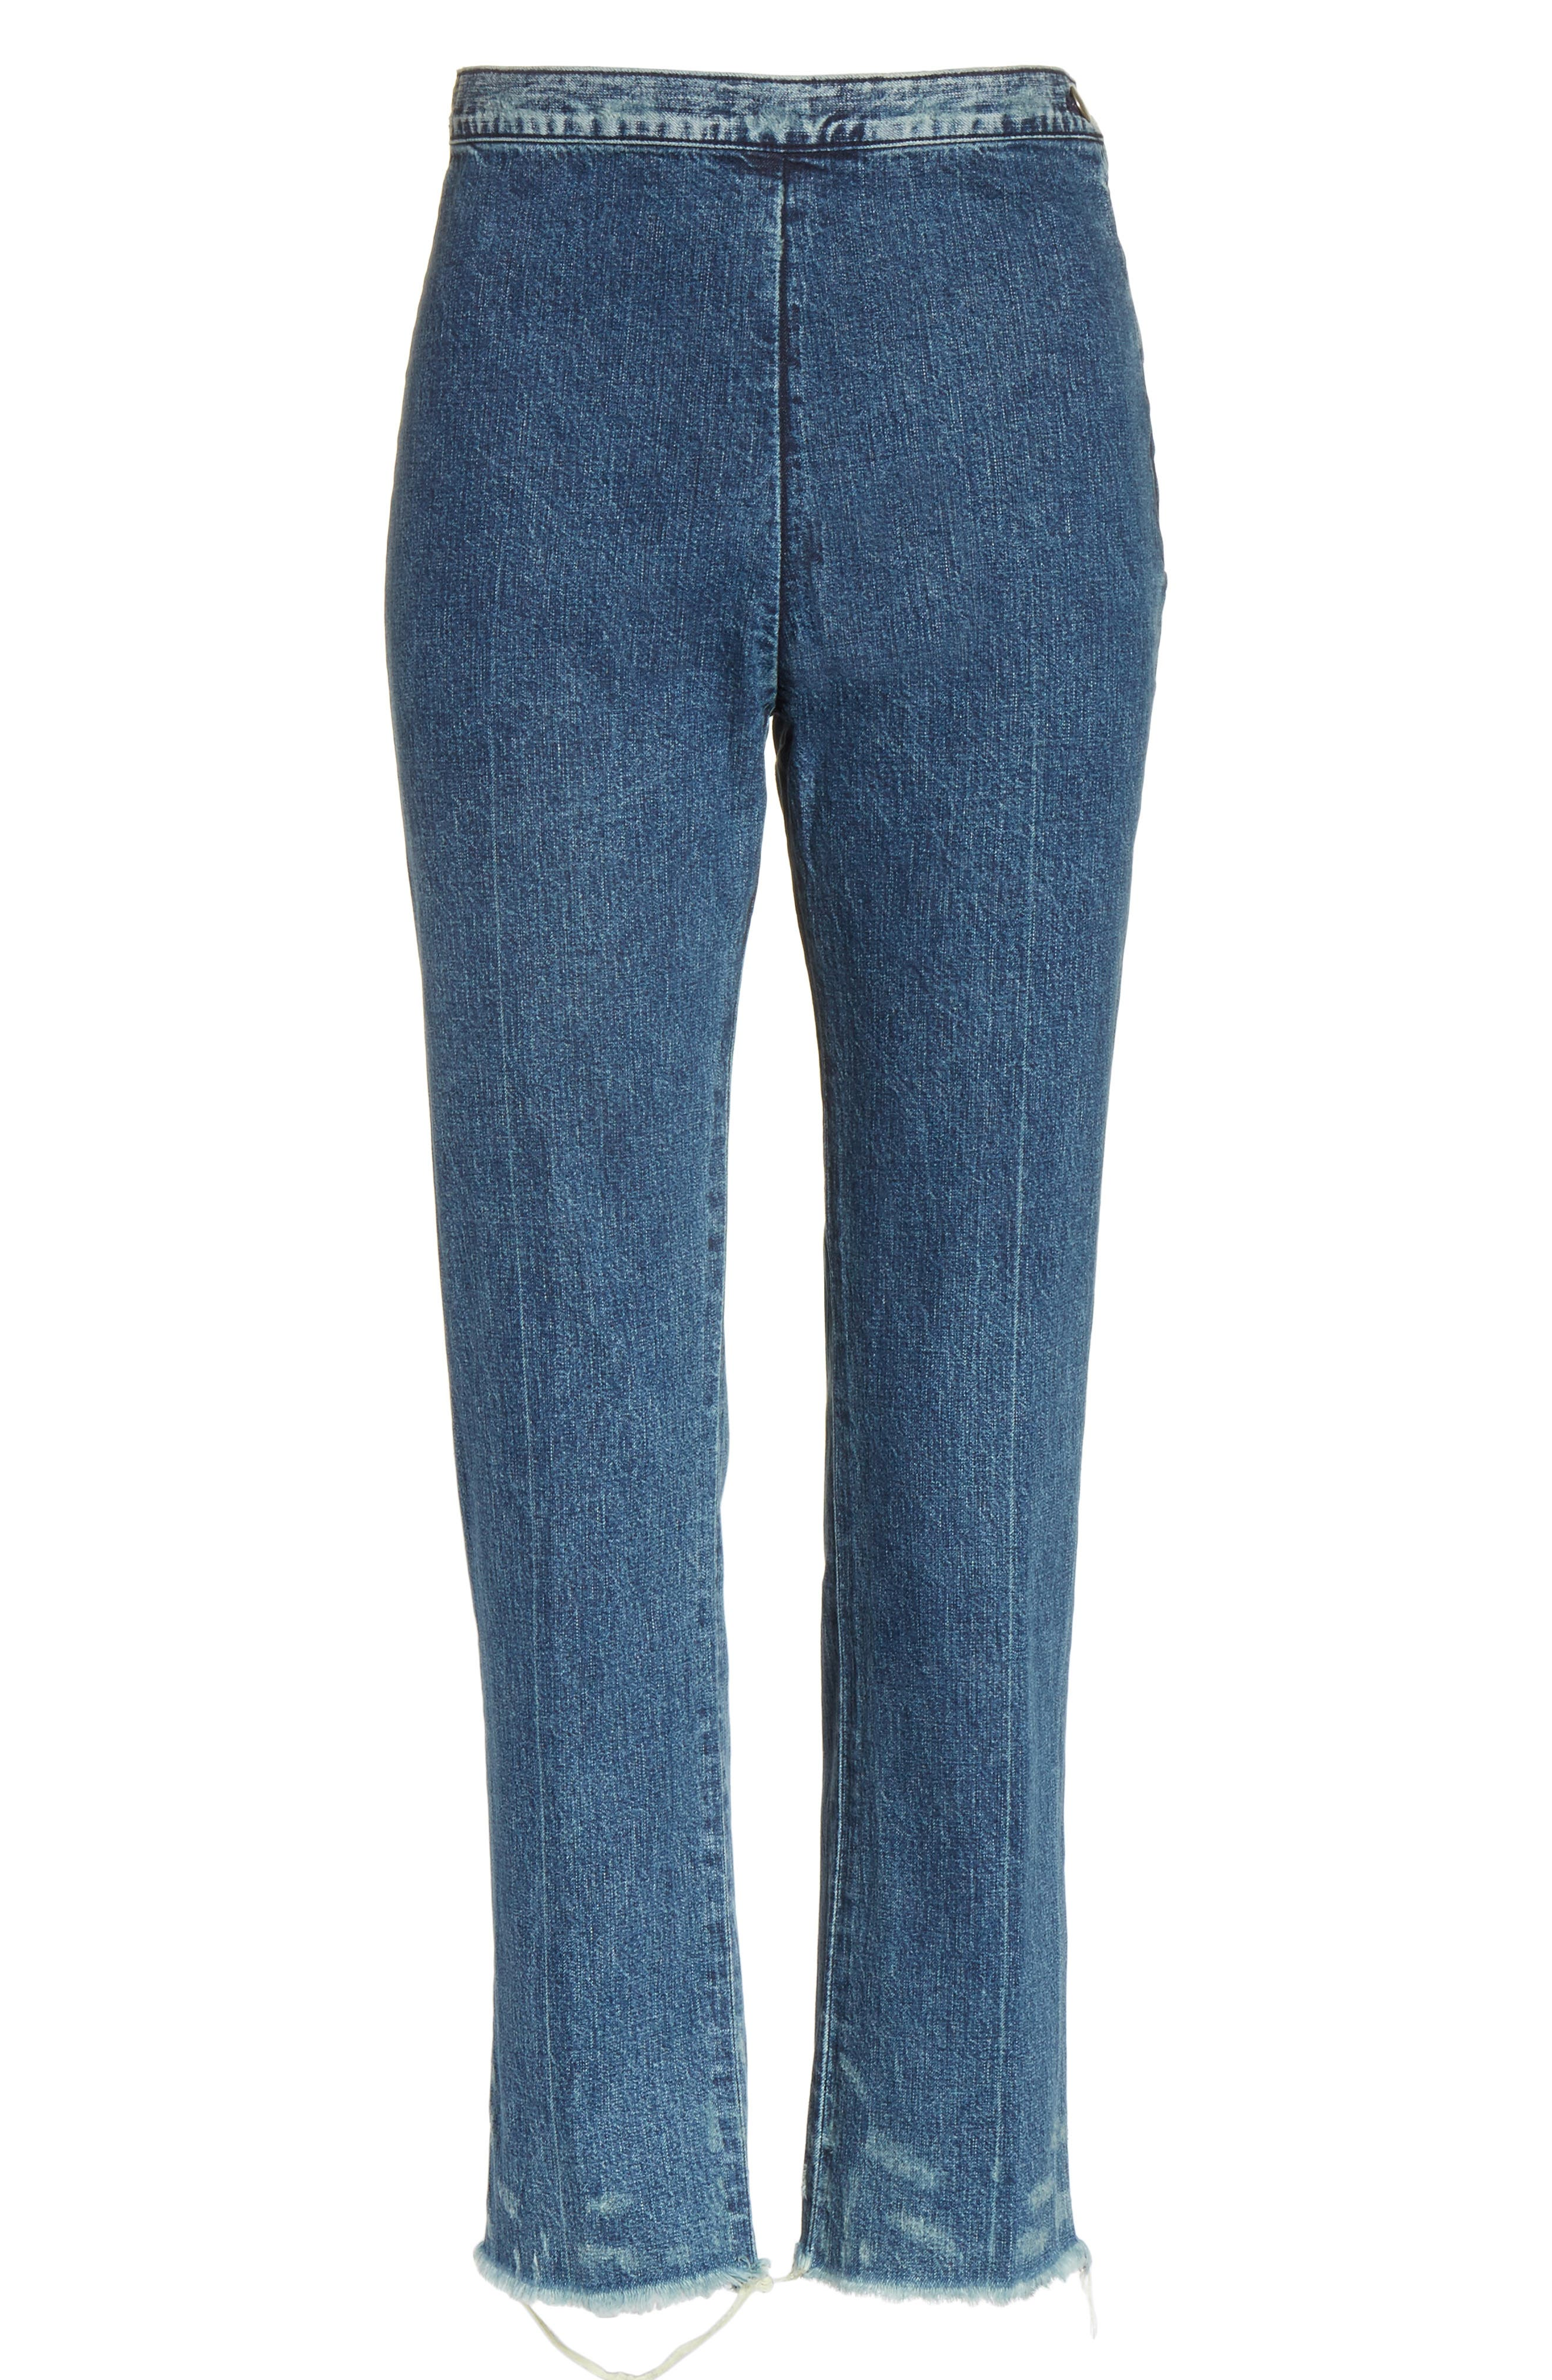 Fletcher Slim Straight Cropped Jeans,                             Alternate thumbnail 6, color,                             420